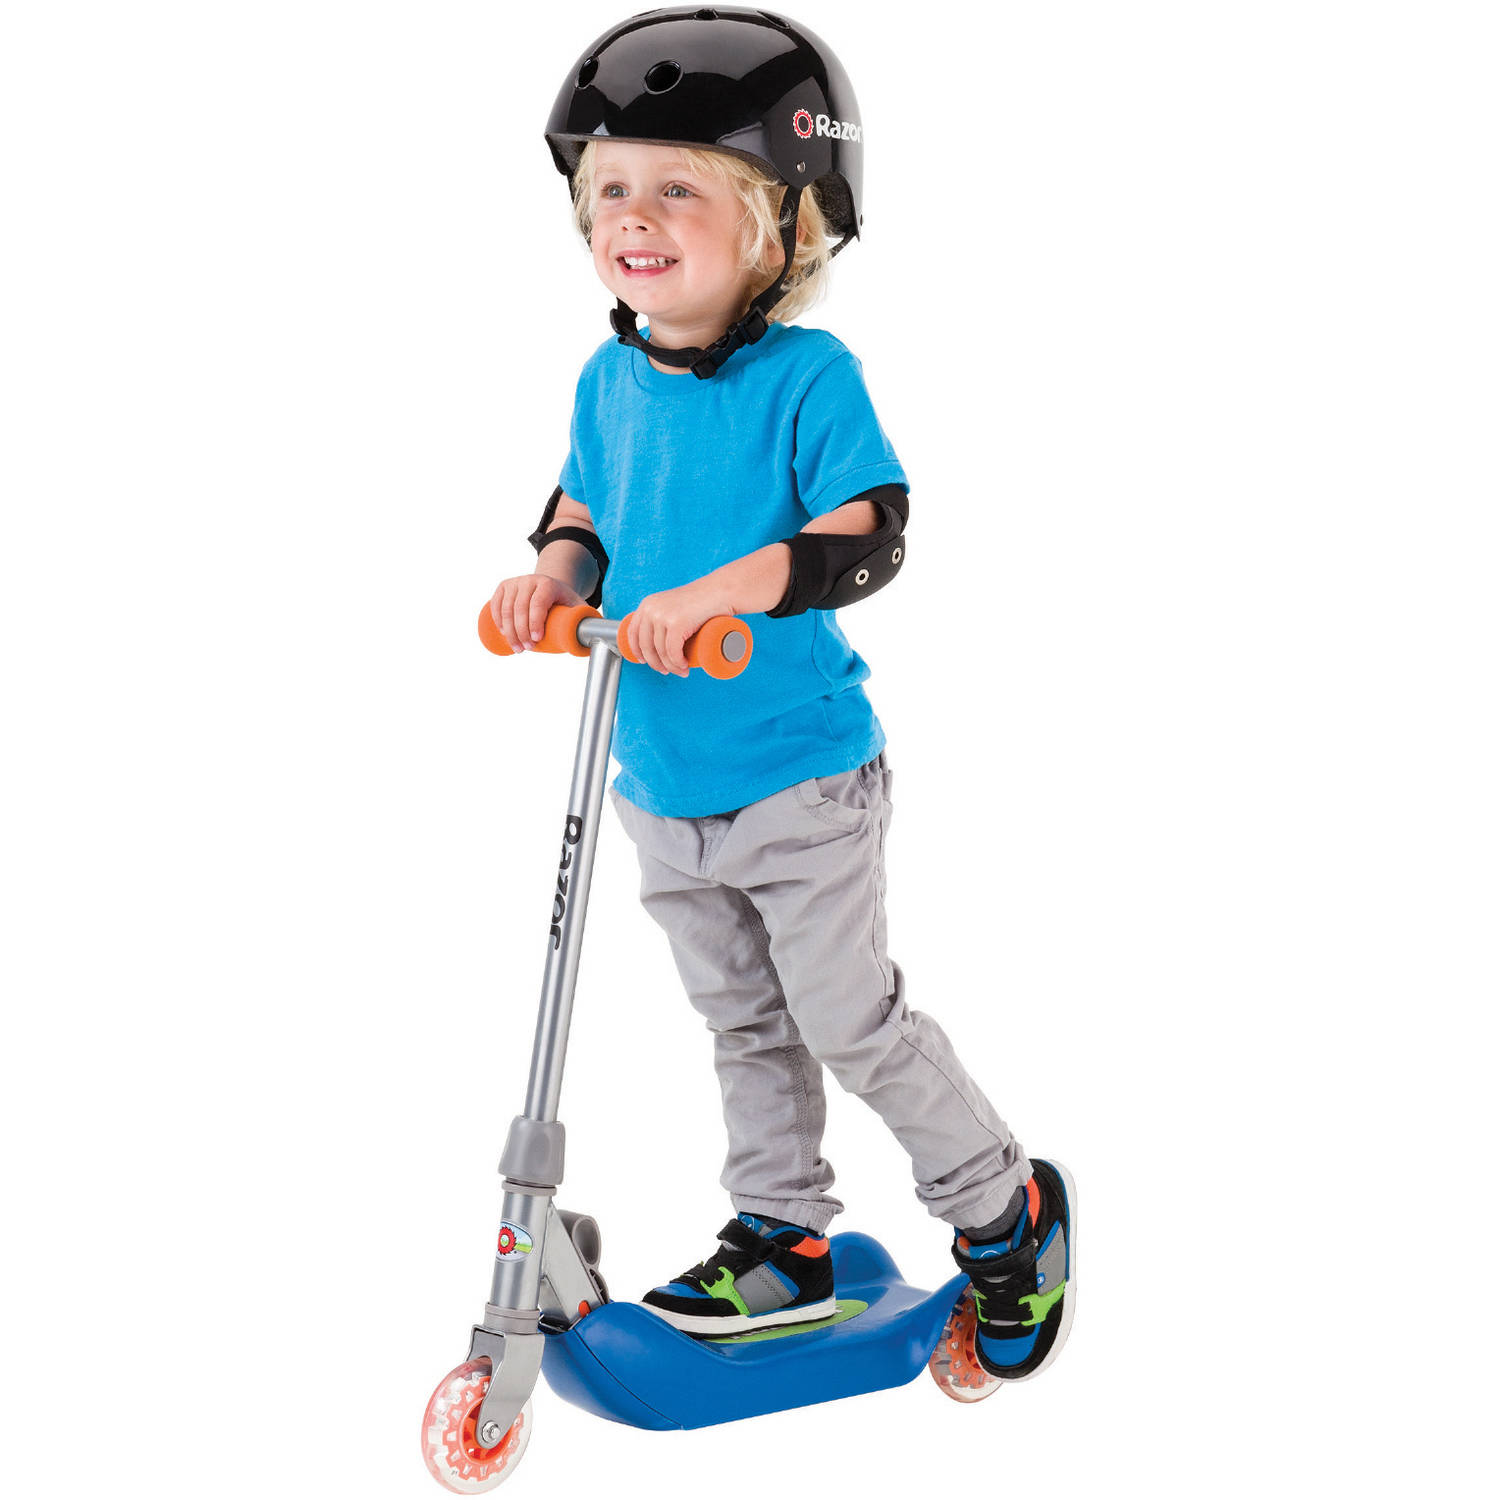 Razor Jr. Folding Kiddie Kick Scooter, Multiple Colors